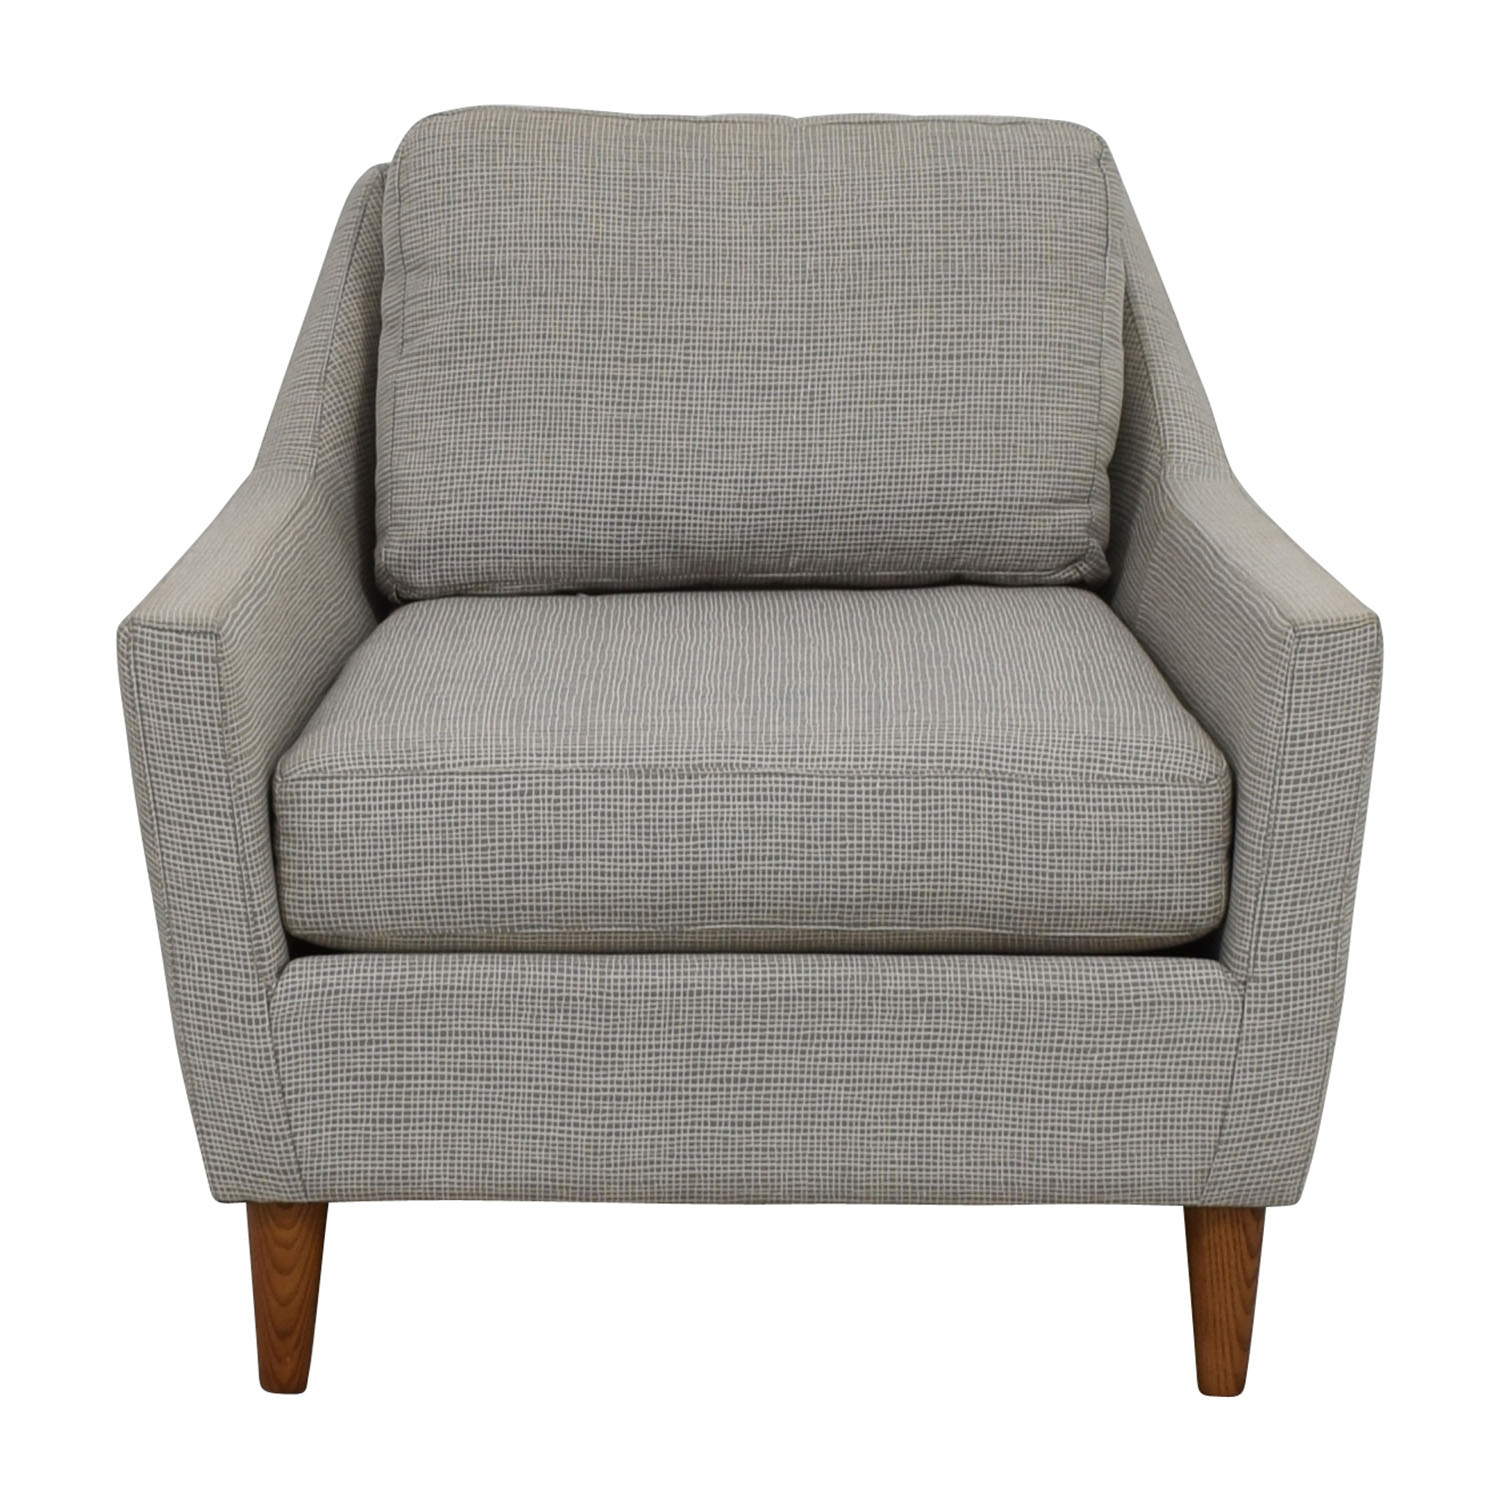 66% Off - West Elm West Elm Grey Everett Sofa Chair / Chairs for Elm Sofa Chairs